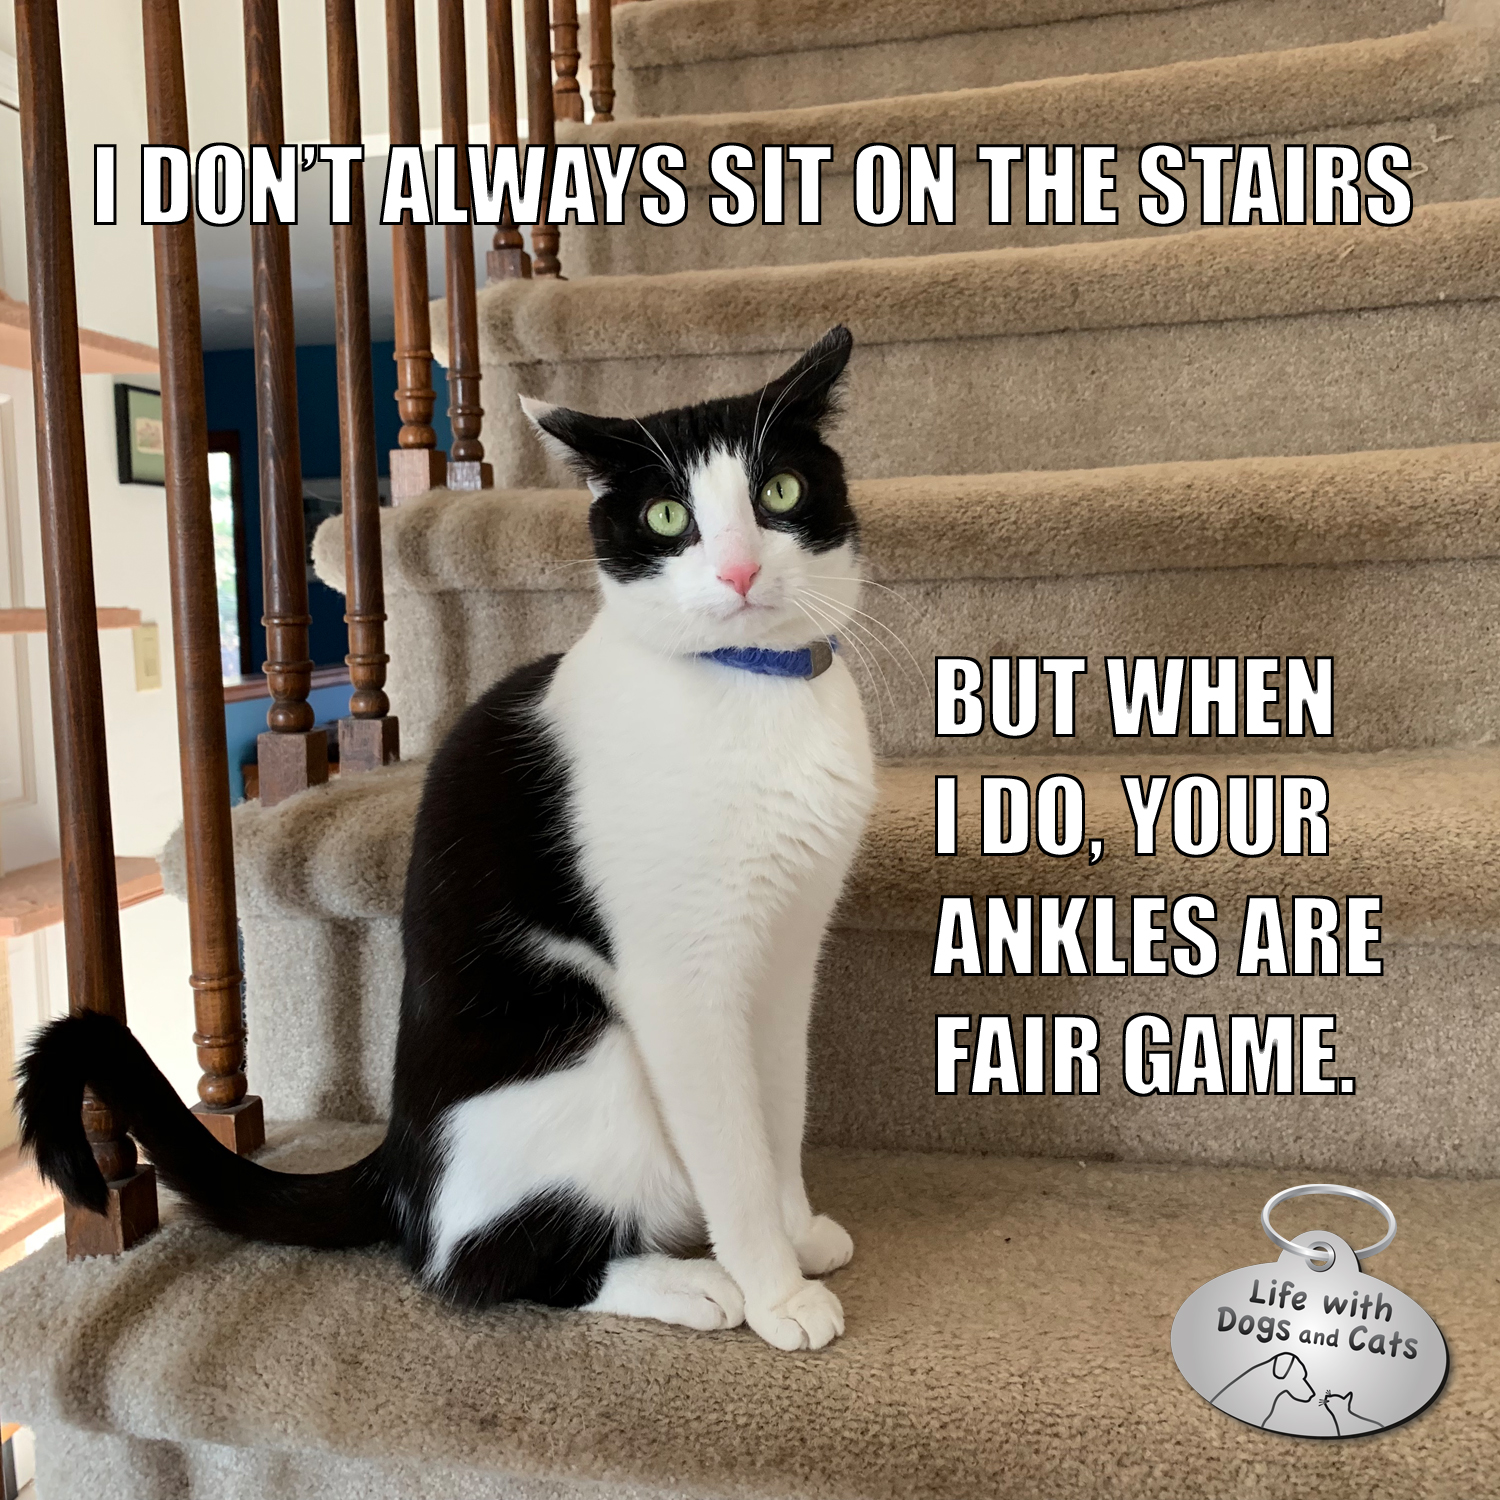 I don't always sit on the stairs, but when I do, your ankles are fair game. #CalvinTKatz #TheMostInterestingCatInTheWorld #StayComfy, my friends